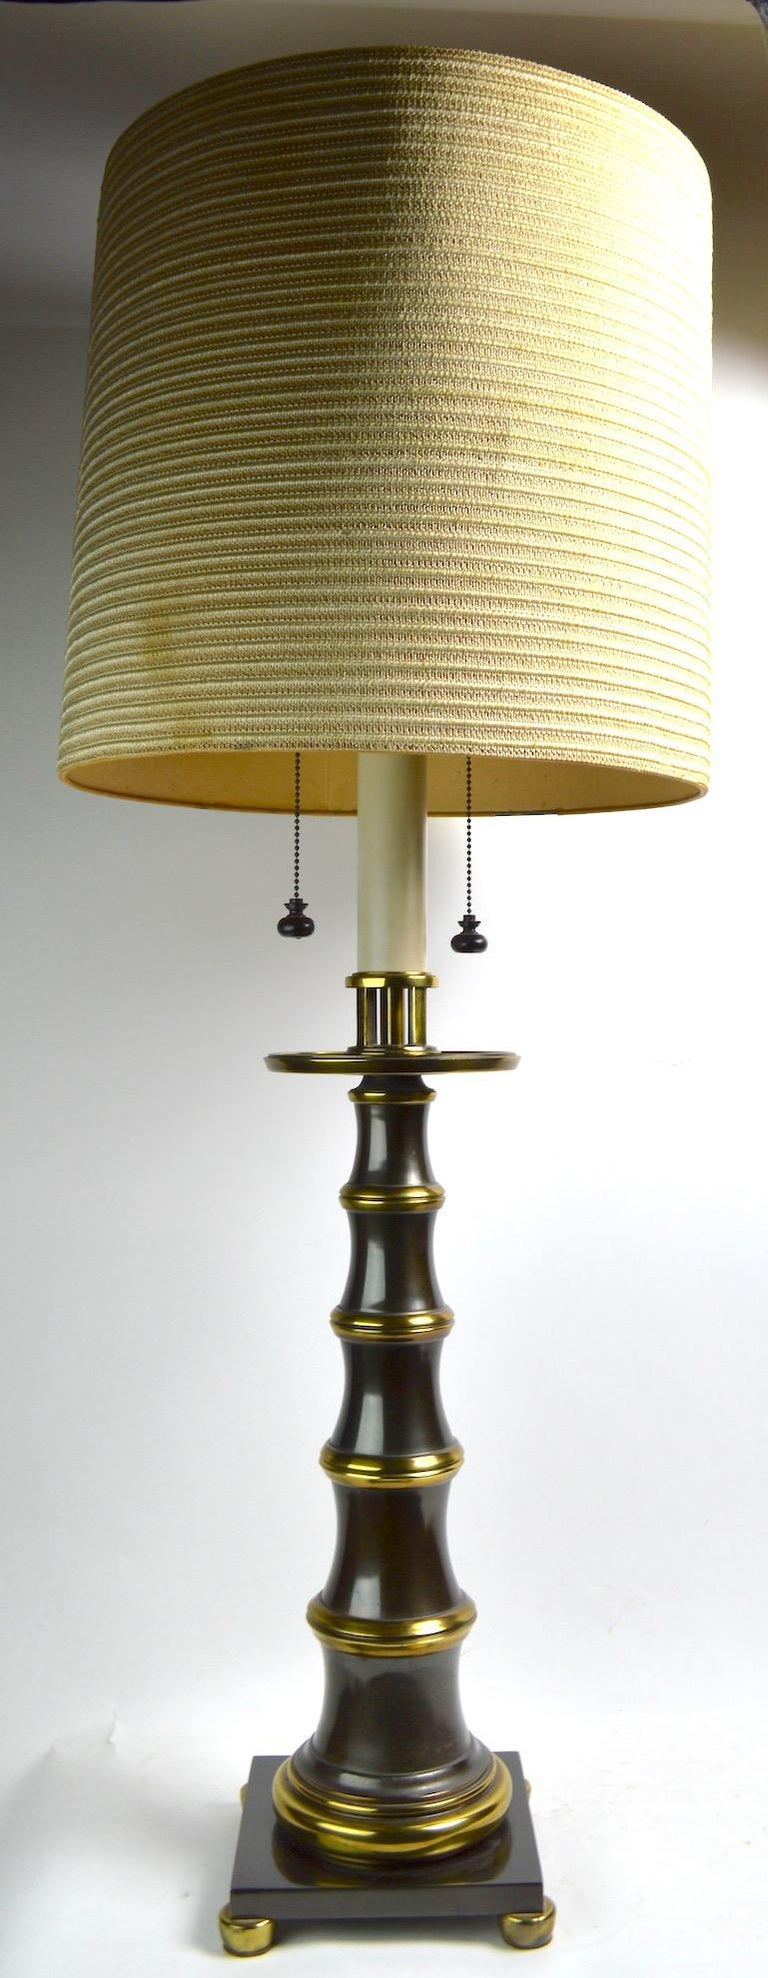 Faux Bamboo Style Table Lamp by Stiffel For Sale 4